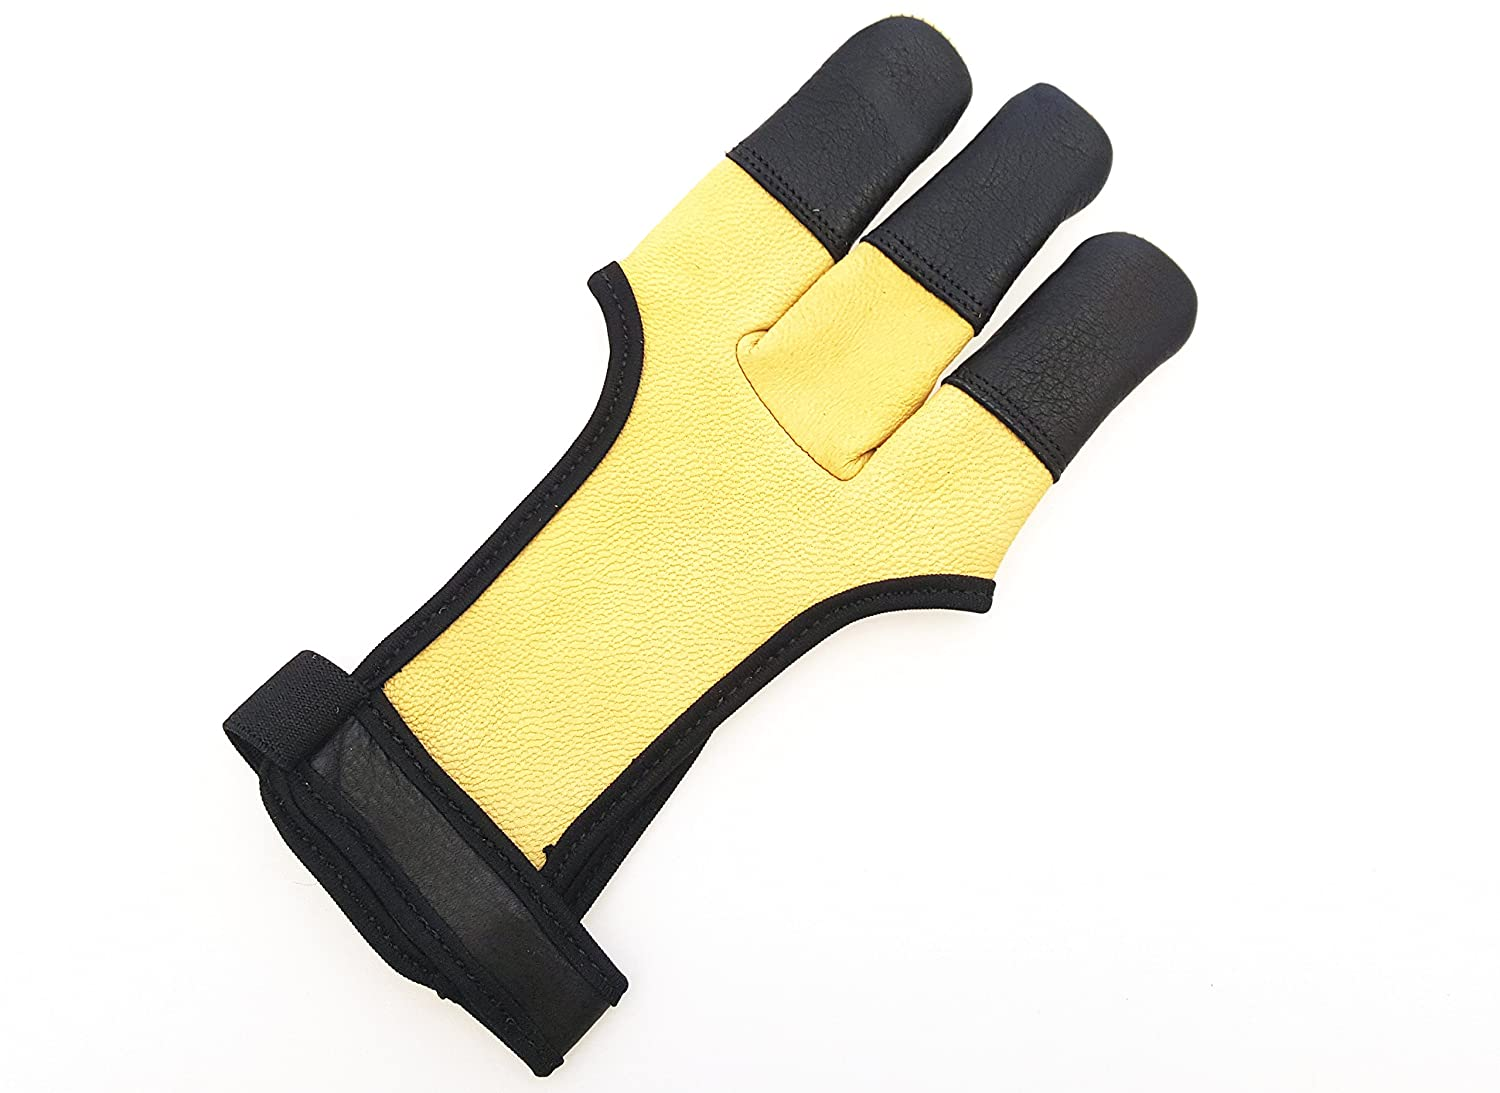 Quality Soft Genuine DeerSkin Traditional Archery Gloves Full Tip Shooting Gloves.